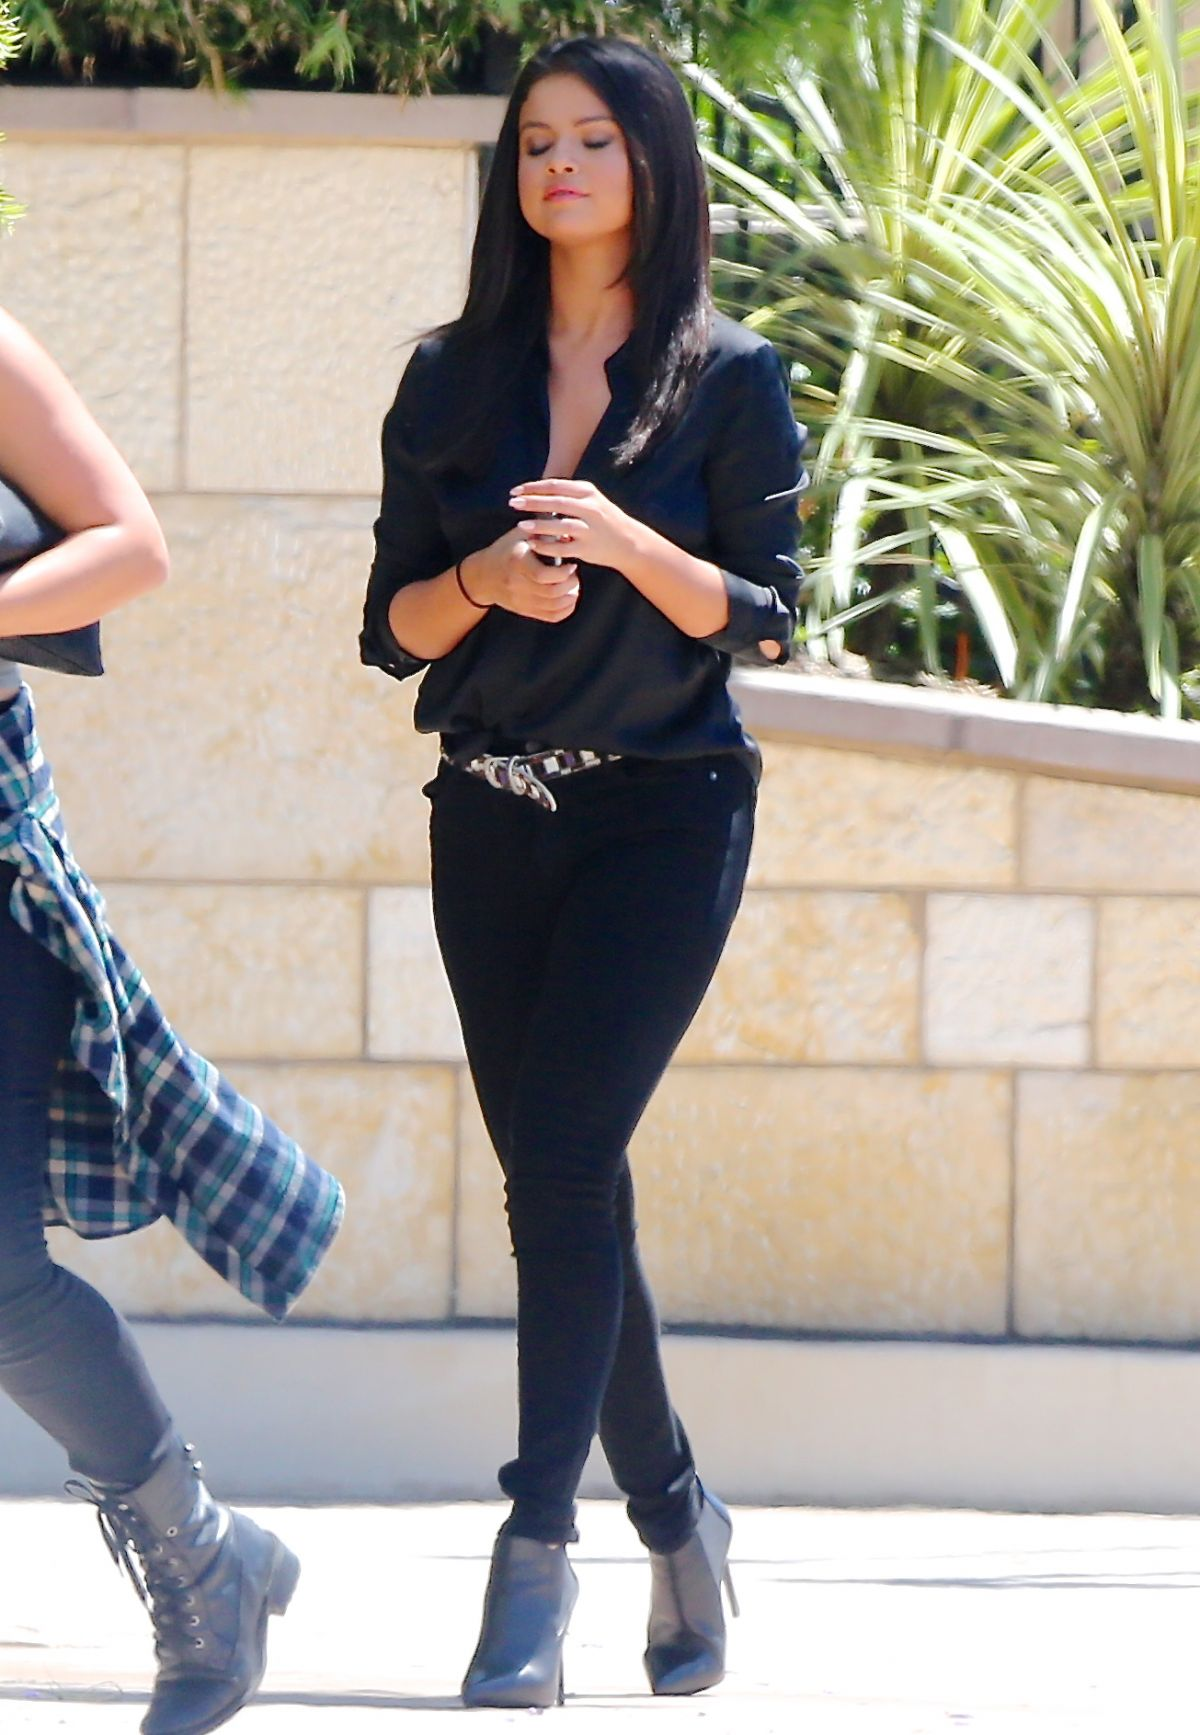 selena gomez out and about in burbank 06  18  2015